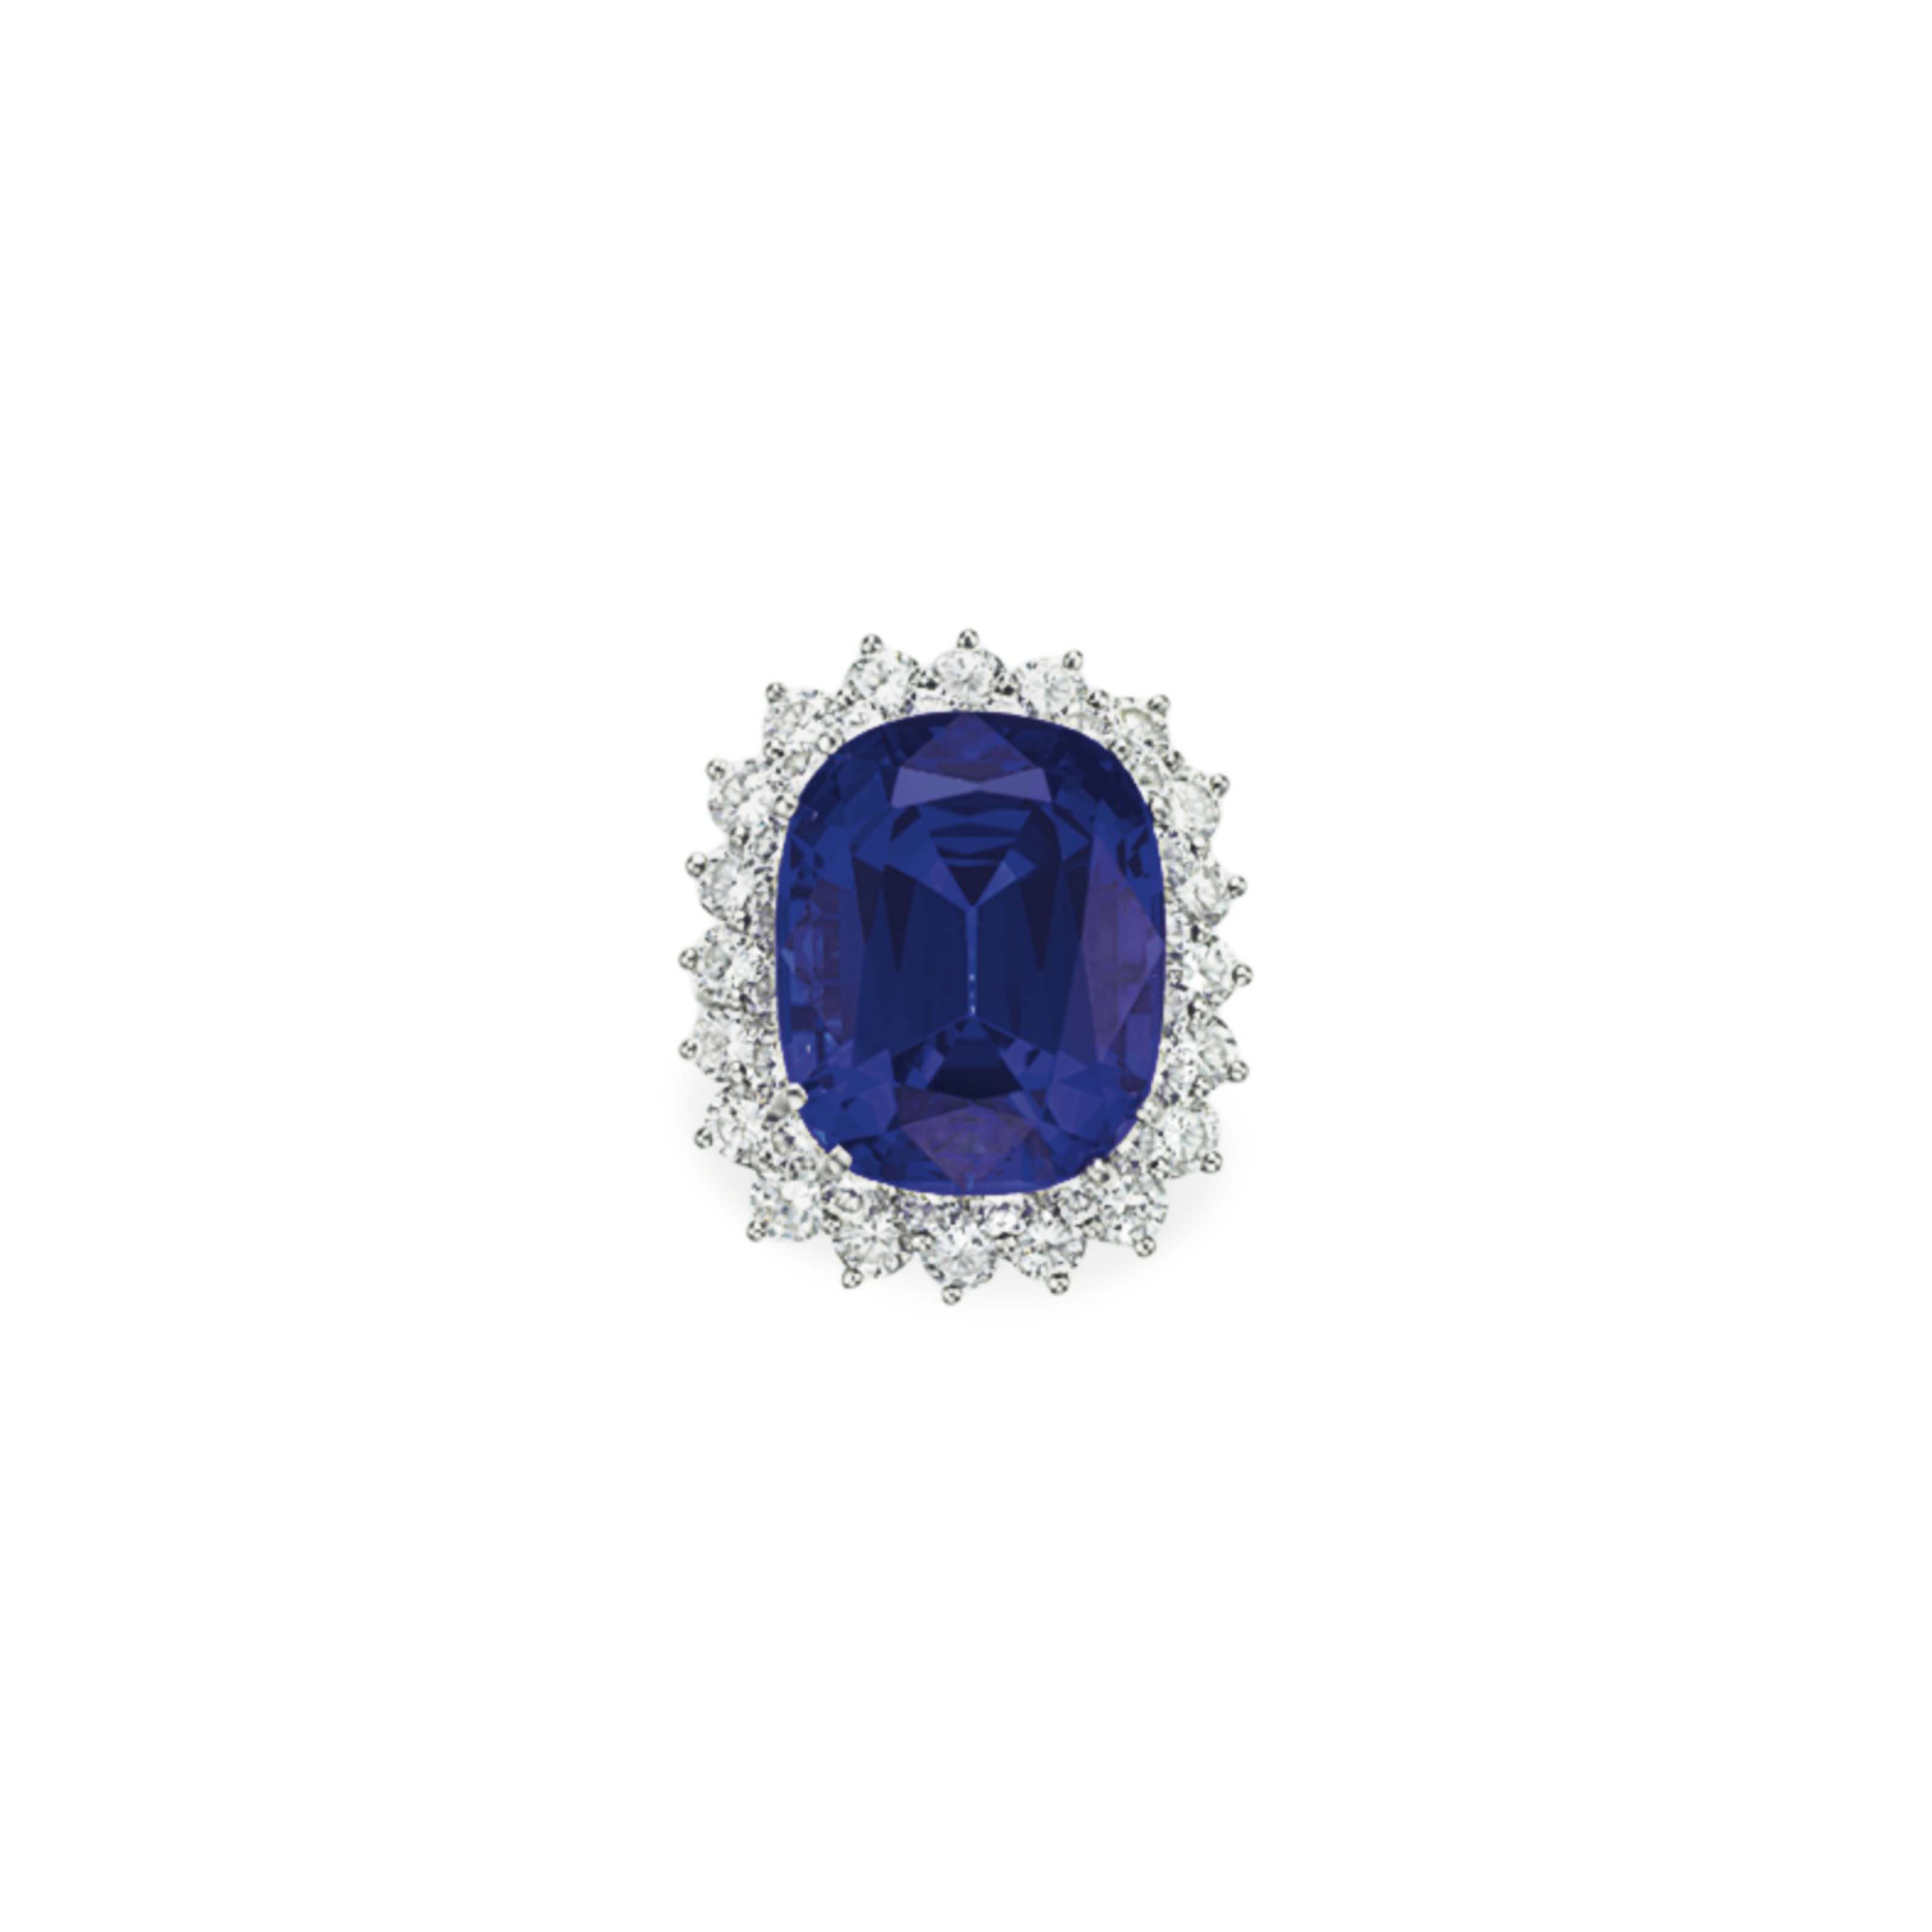 A TANZANITE AND DIAMOND RING, BY TIFFANY & CO.